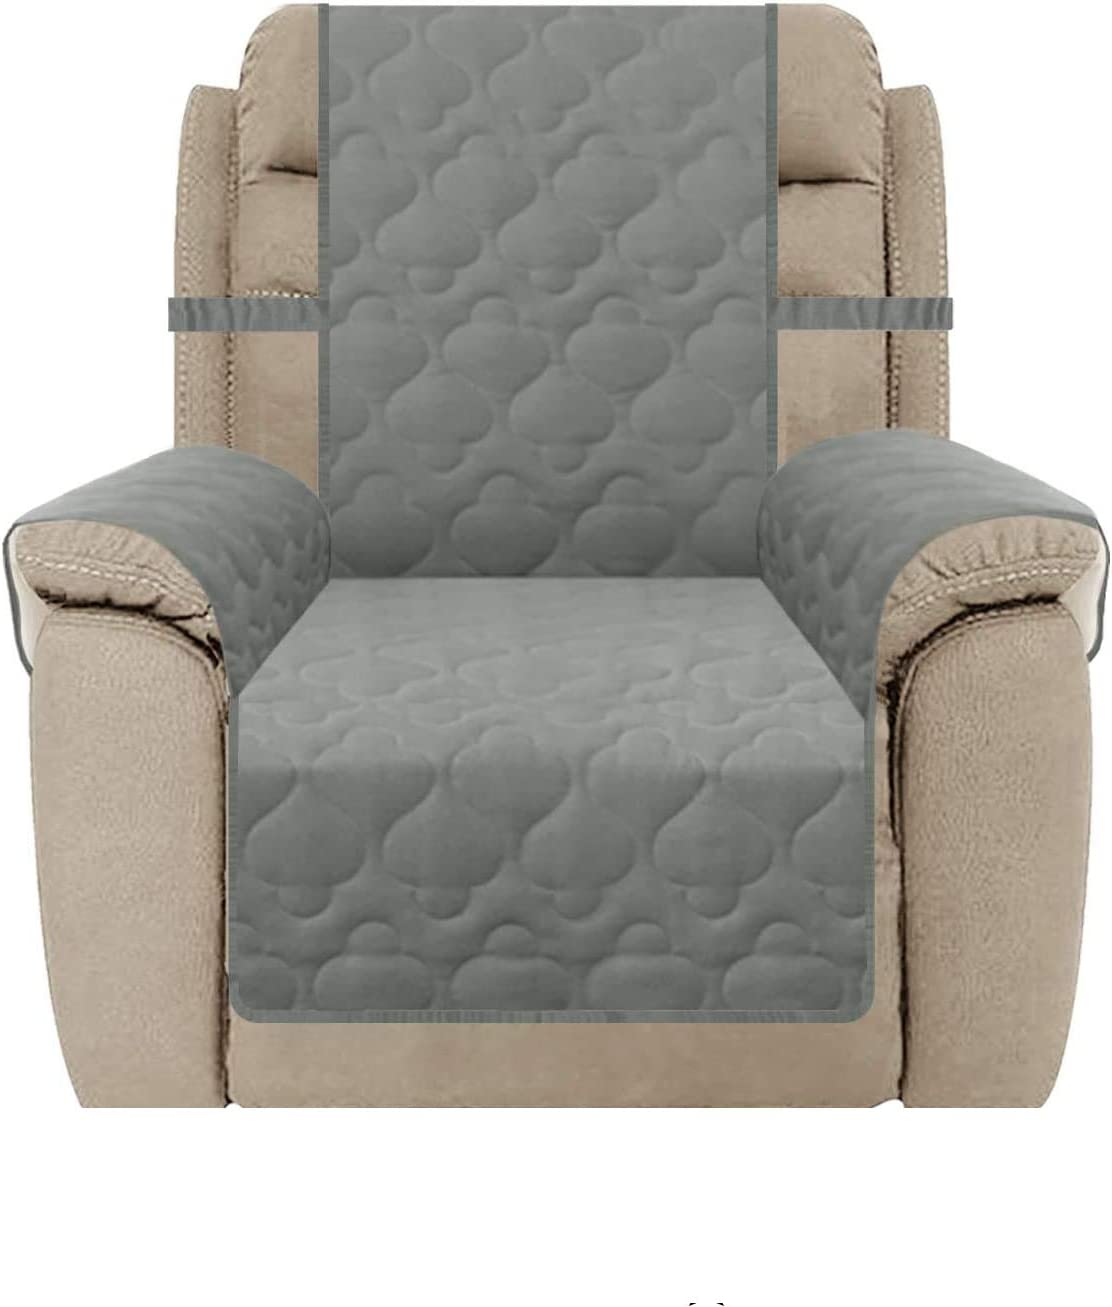 SUNNYTEX Waterproof Oversized Recliner Slipcover, Large Reclner Chair Cover Non-Slip Couch Cover Furniture Protector for Pets Children&Dog (Recliner(Oversized),Grey)